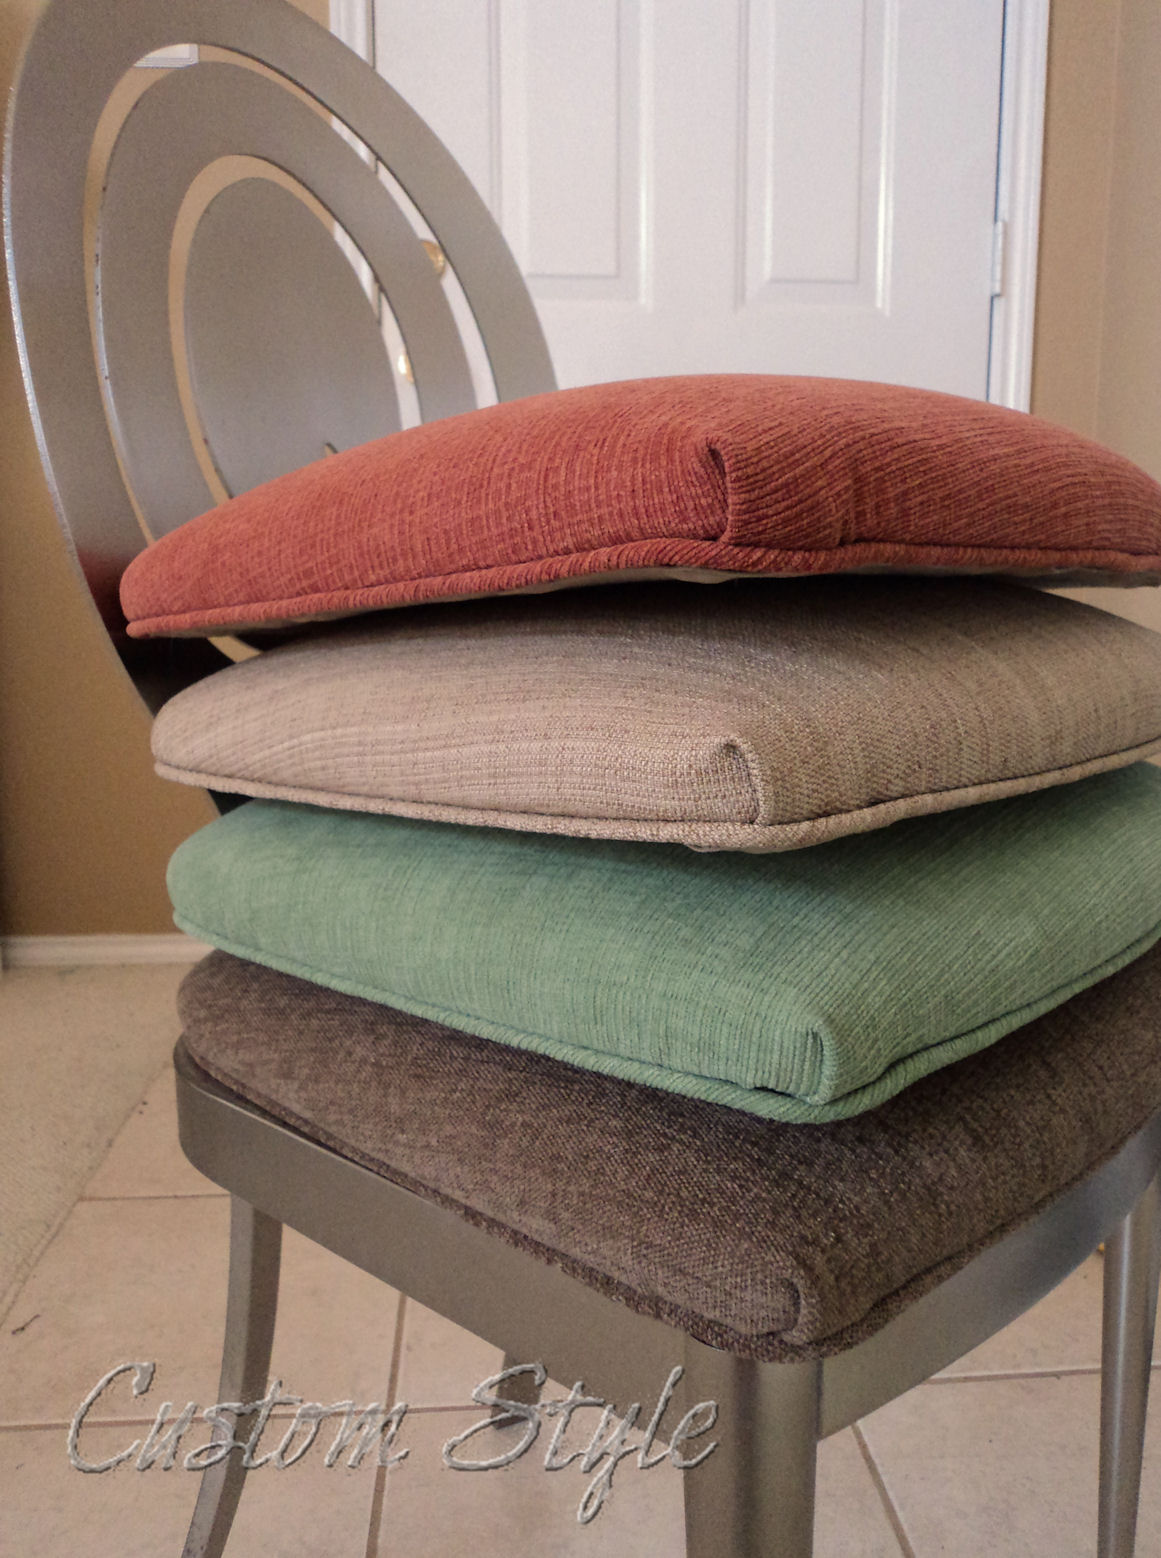 Reupholstering dining chair cushions custom style - Cushioned dining room chairs ...